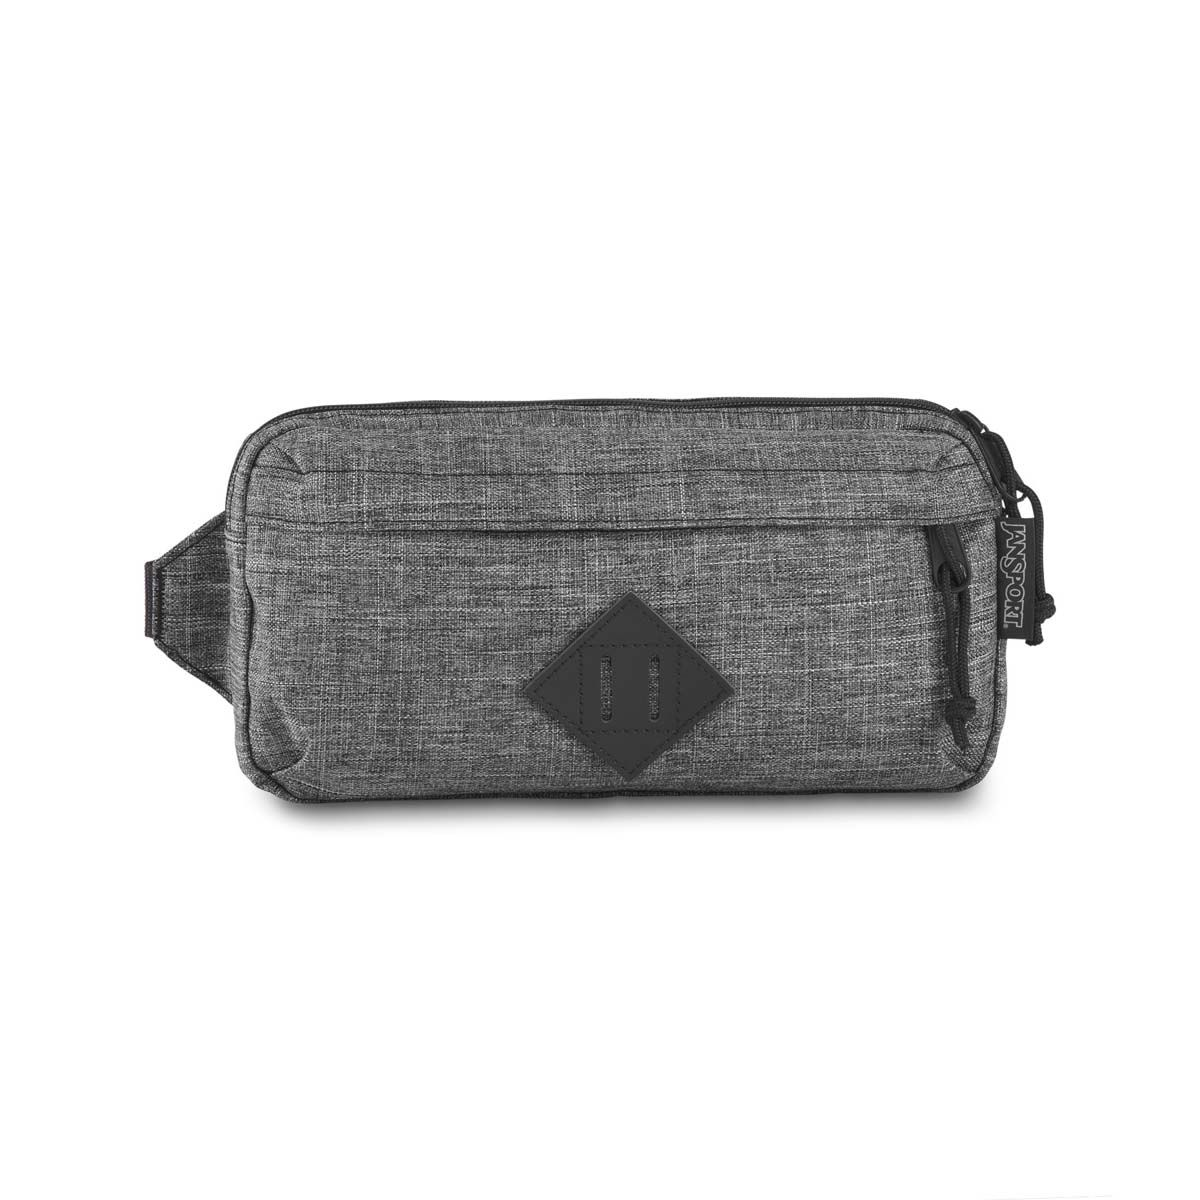 JanSport Waisted Fanny Pack in Heathered 600D